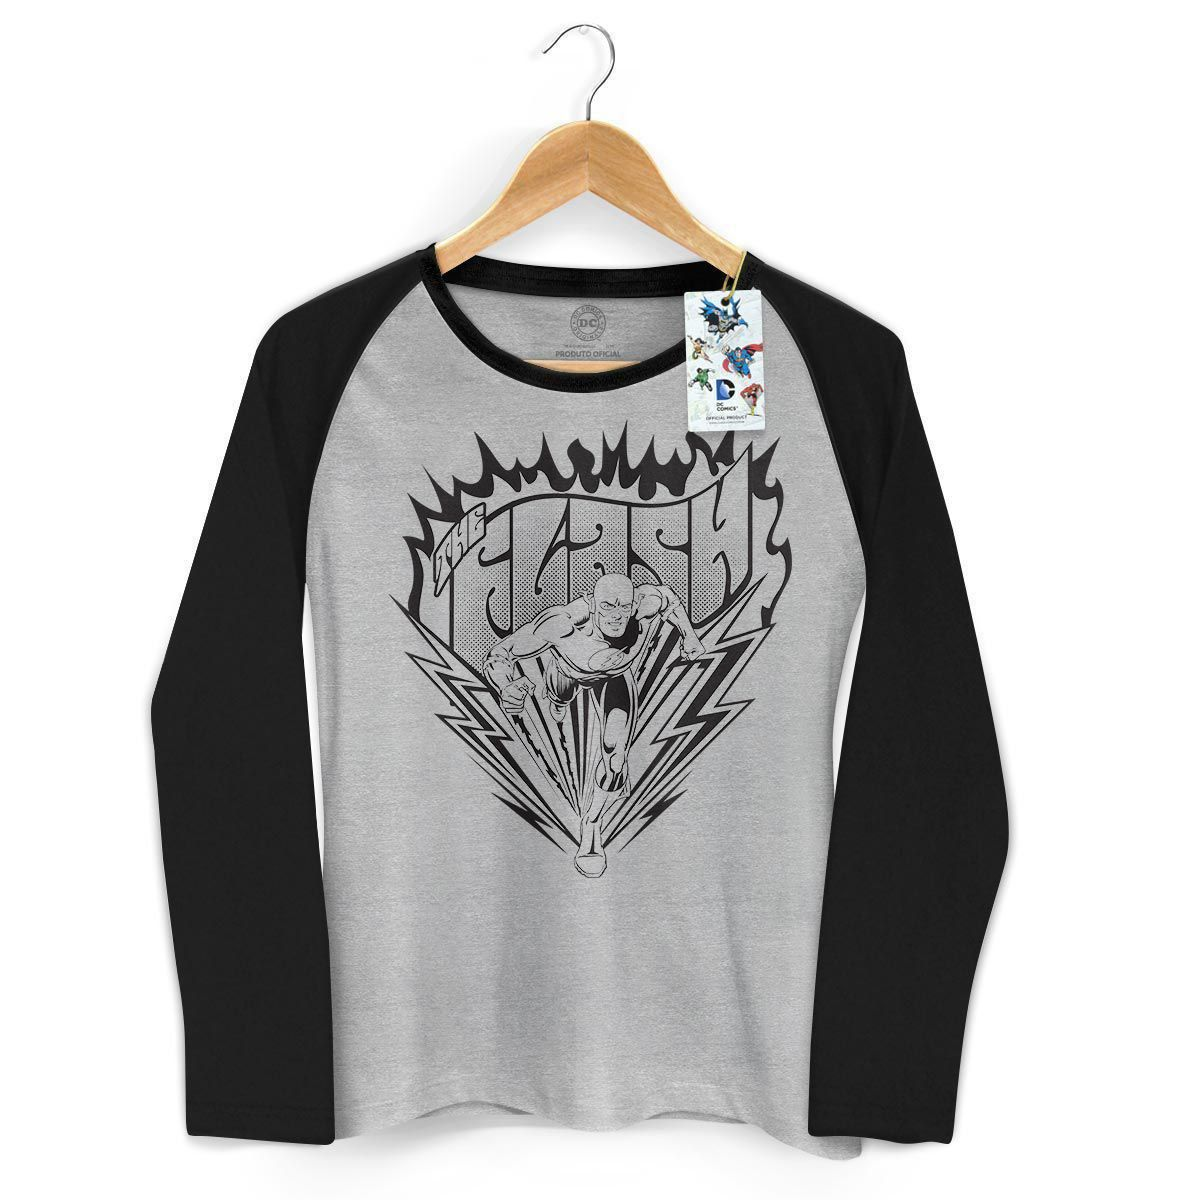 Camiseta Manga Longa Raglan Feminina The Flash P&B